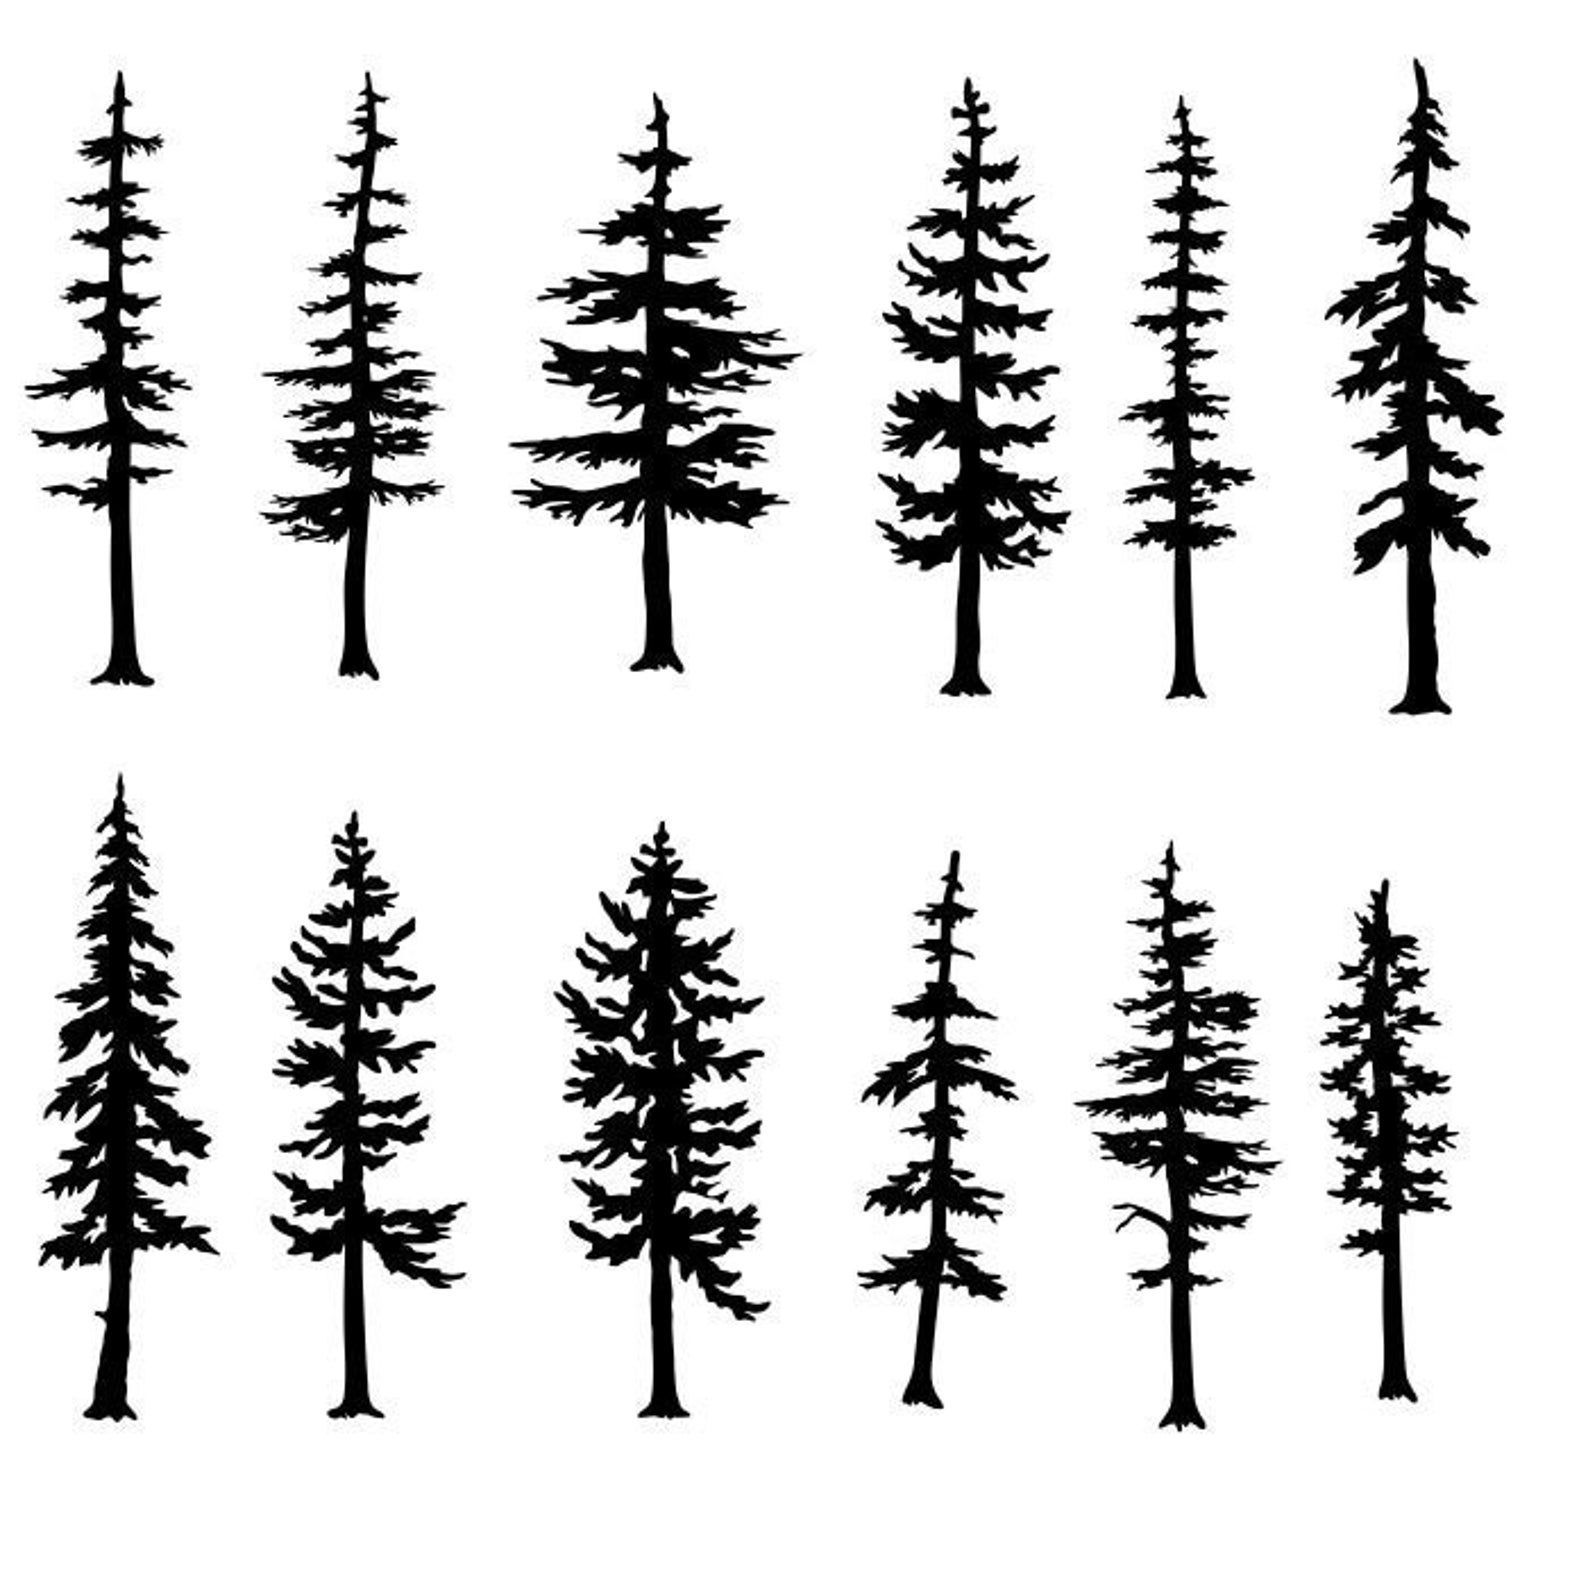 Trees Fir Evergreen Pine Clipart Silhouettes Eps Dxf Pdf Png Svg Files Plasma Cnc Clipart Cnc Dxf Eps Tree Silhouette Tattoo Pine Tattoo Tree Drawing